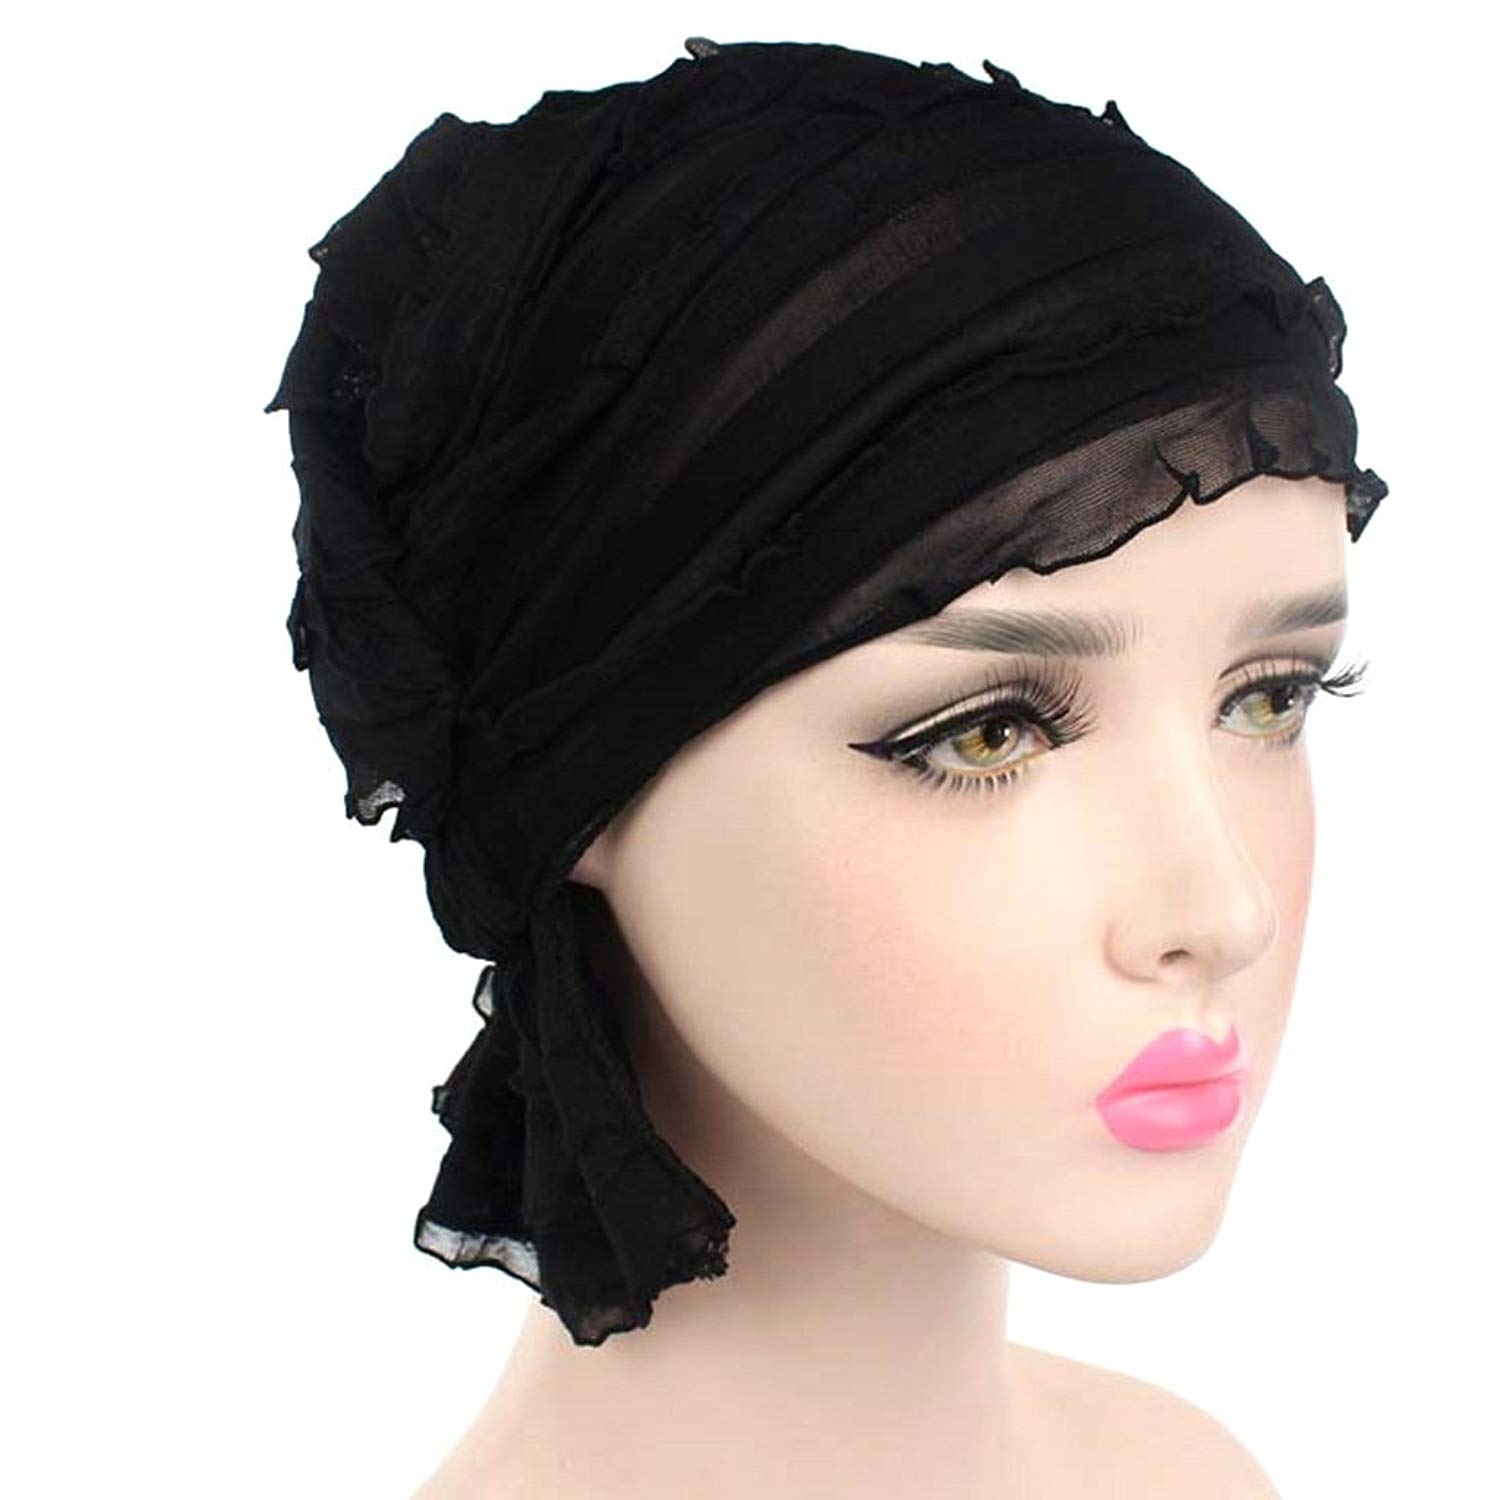 70b457470fa Get Quotations · Cugap Ruffle Trinity Turban Caps for Women with Chemo  Cancer Hair Loss